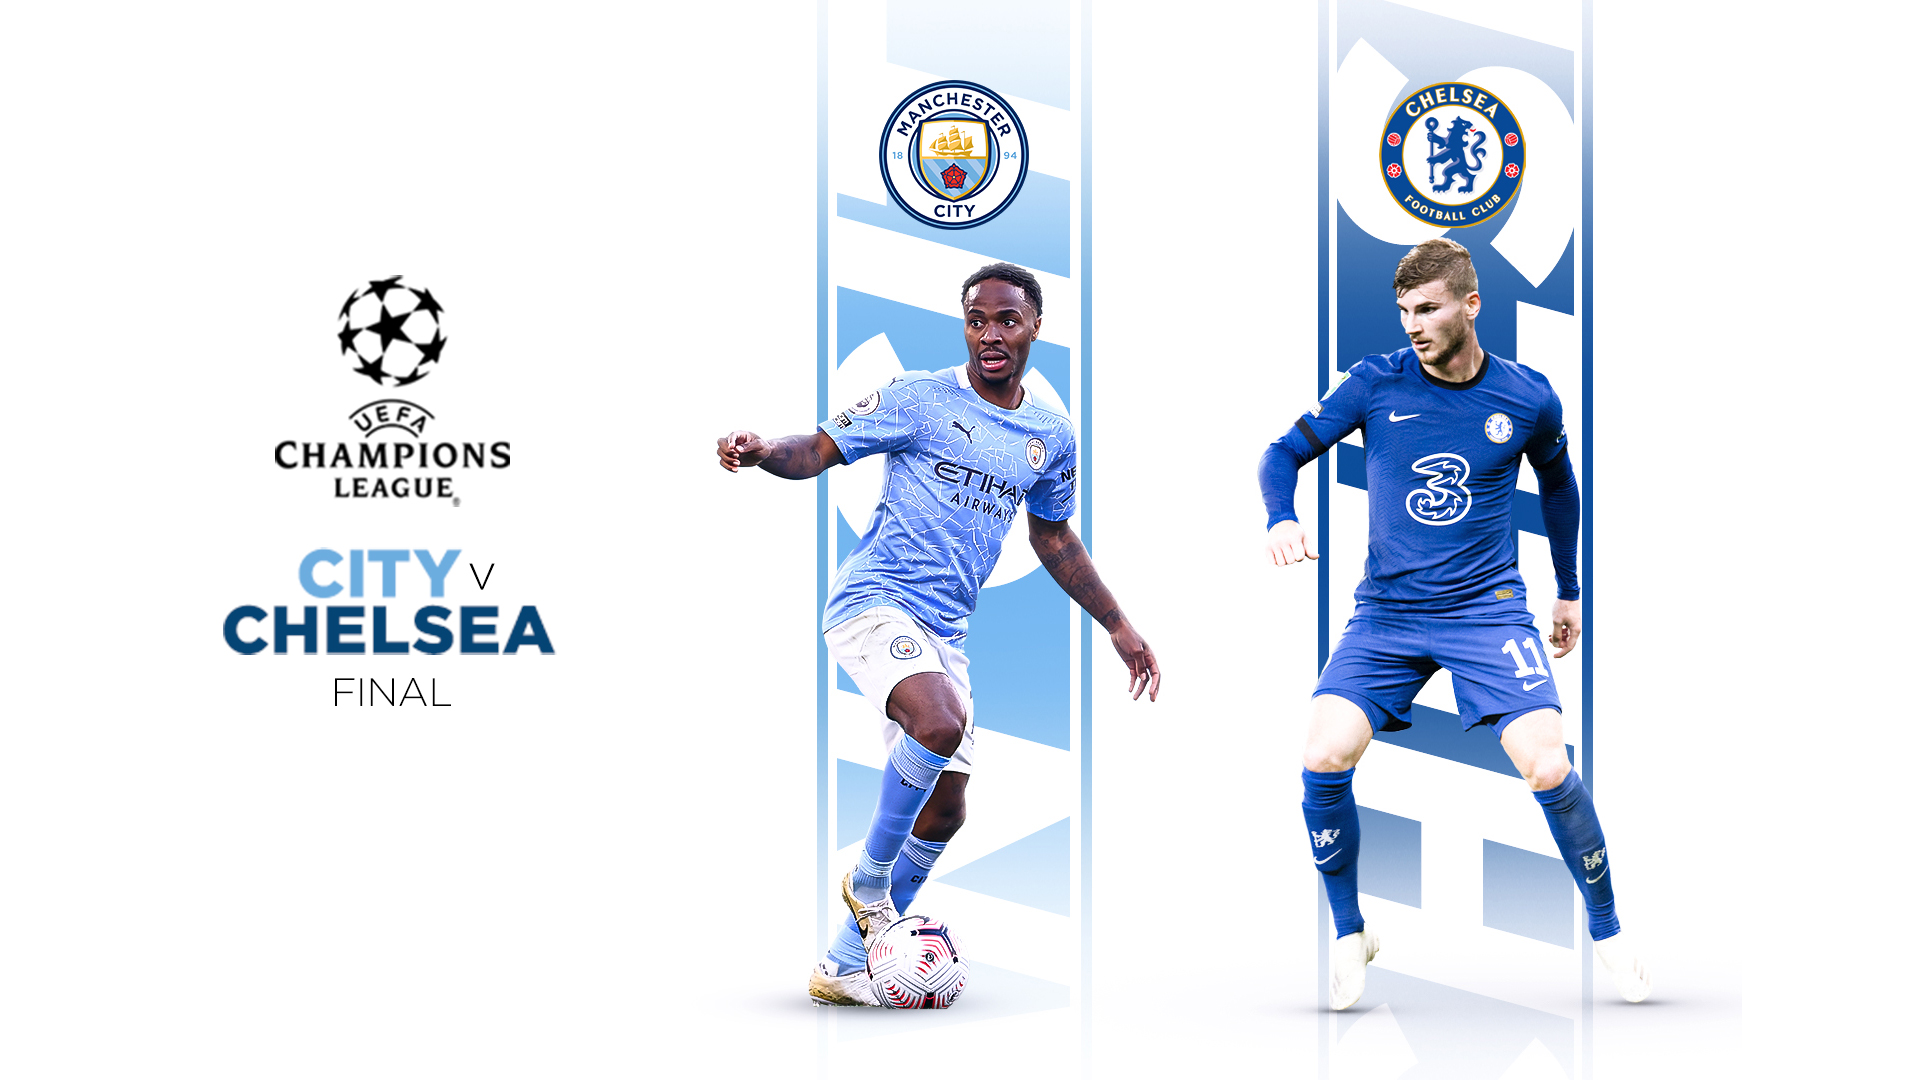 Champions League final: Manchester City v Chelsea How to watch the final and How many fans will attend